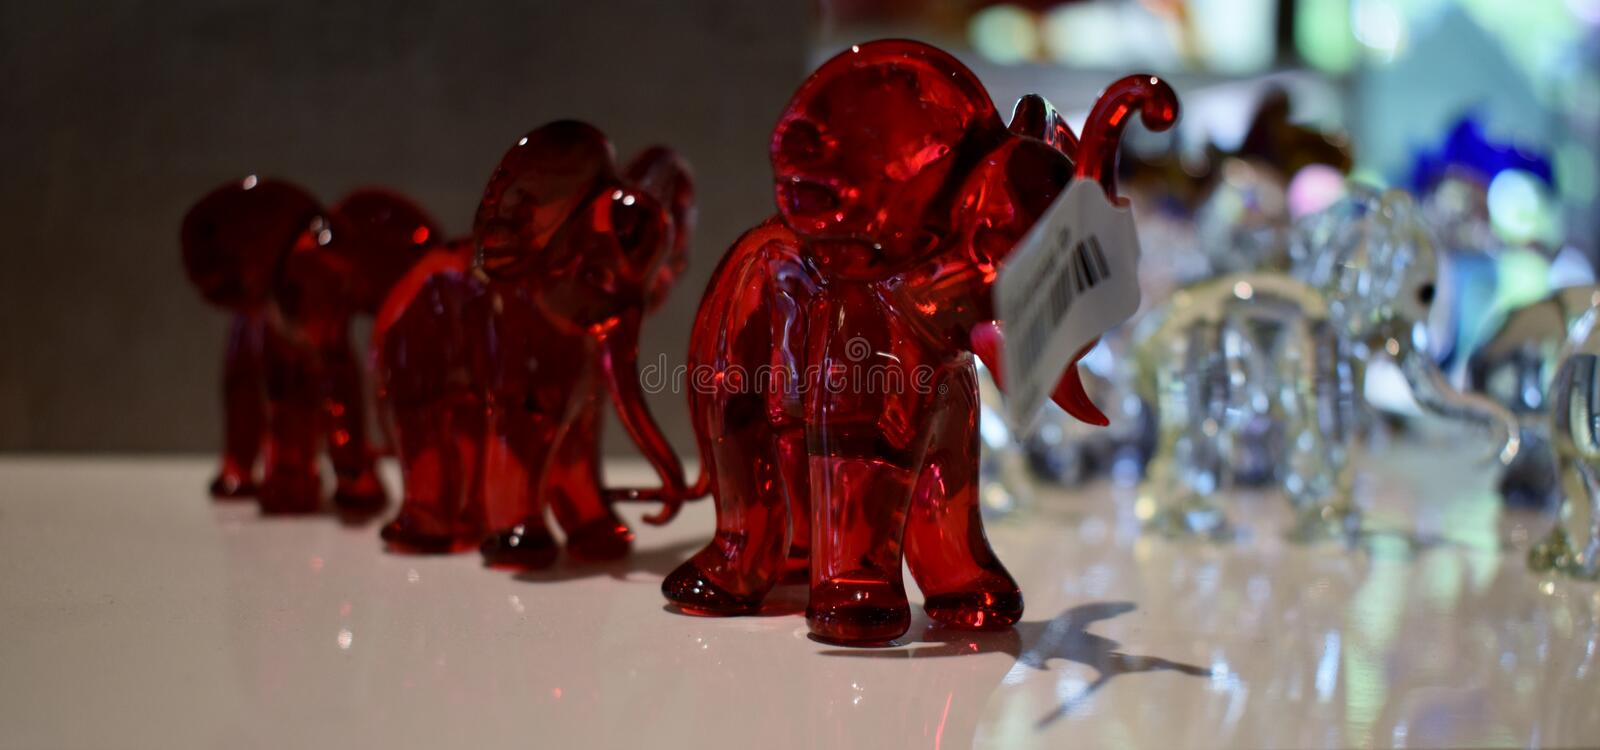 Glass work, elephants @Shop at Black Forest, Germany. Amazing , unbelievable glass work. Glass Elephants in a local shop at Black Forest @ Germany stock photography